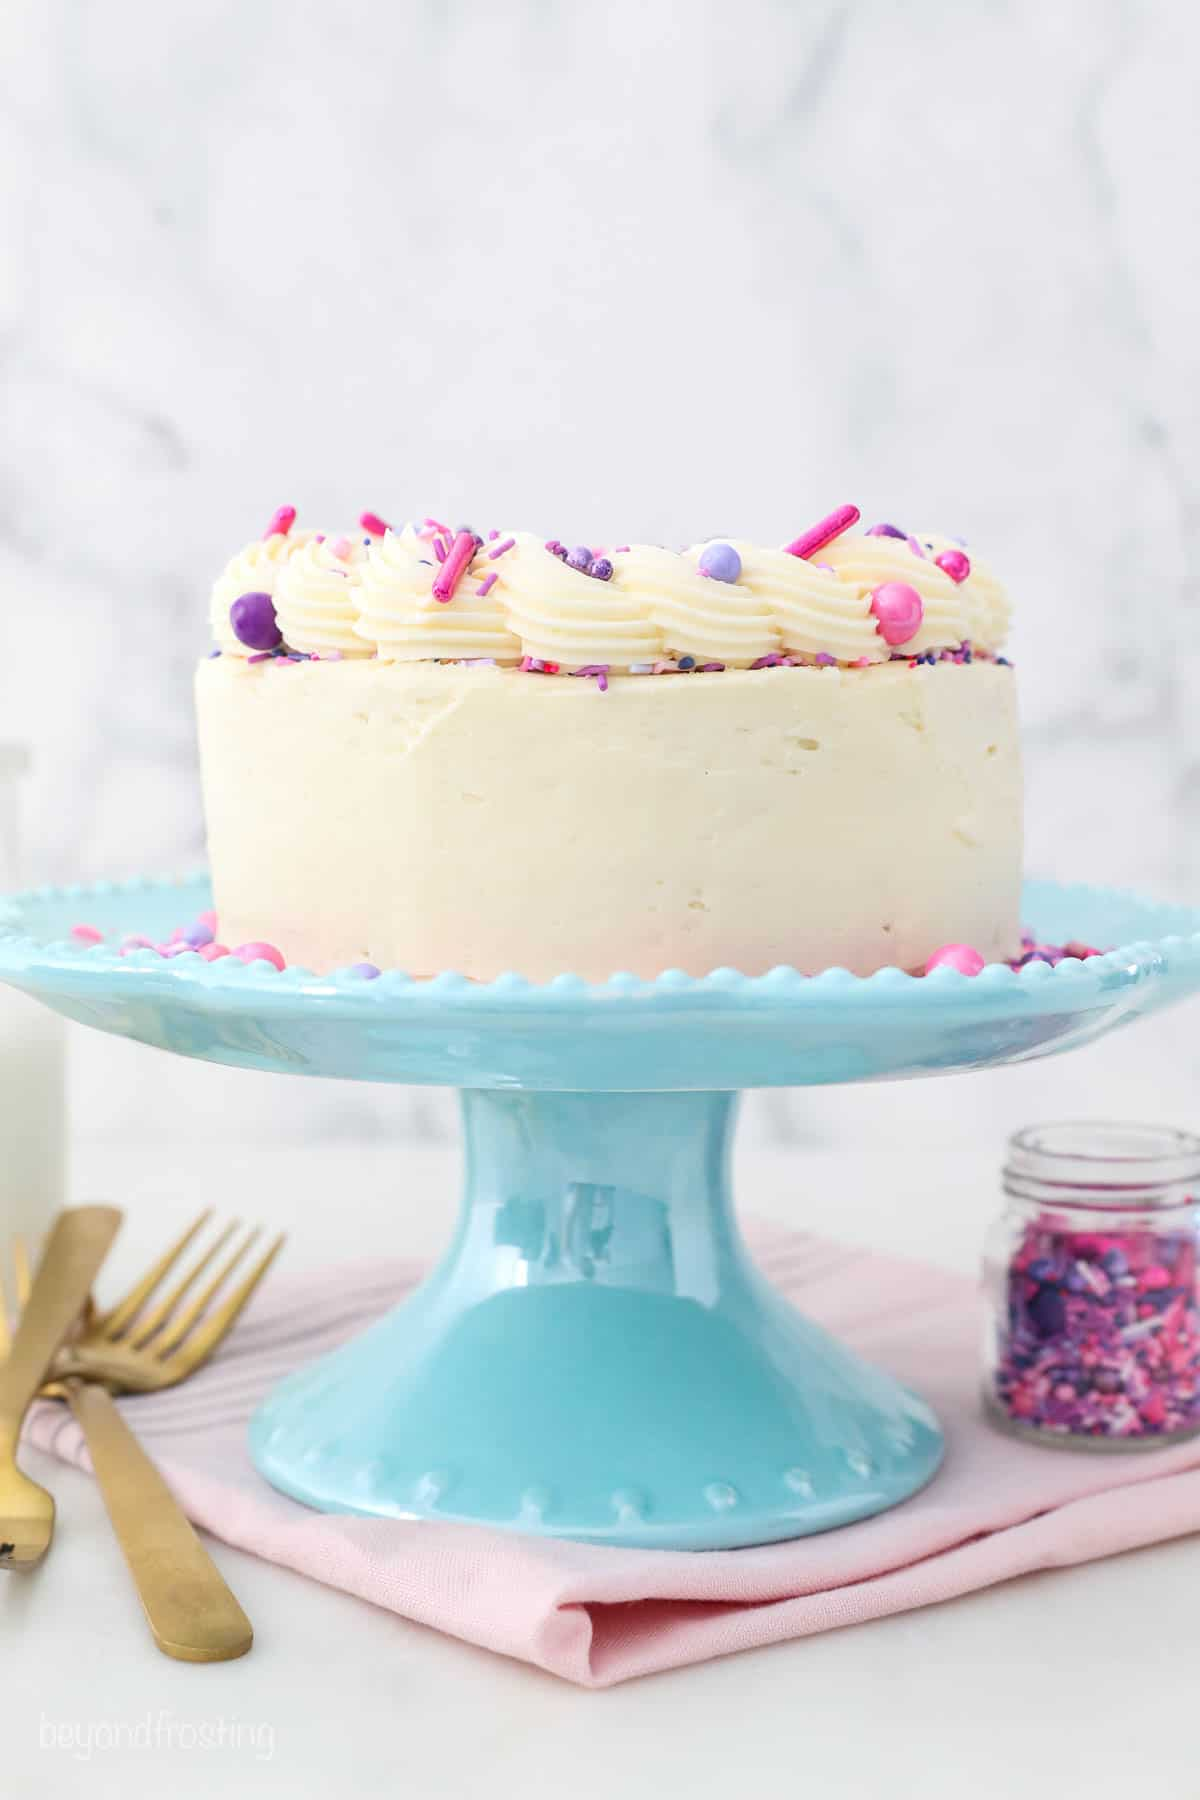 a decorated vanilla cake on a teal cake stand, pink napkin and gold forks